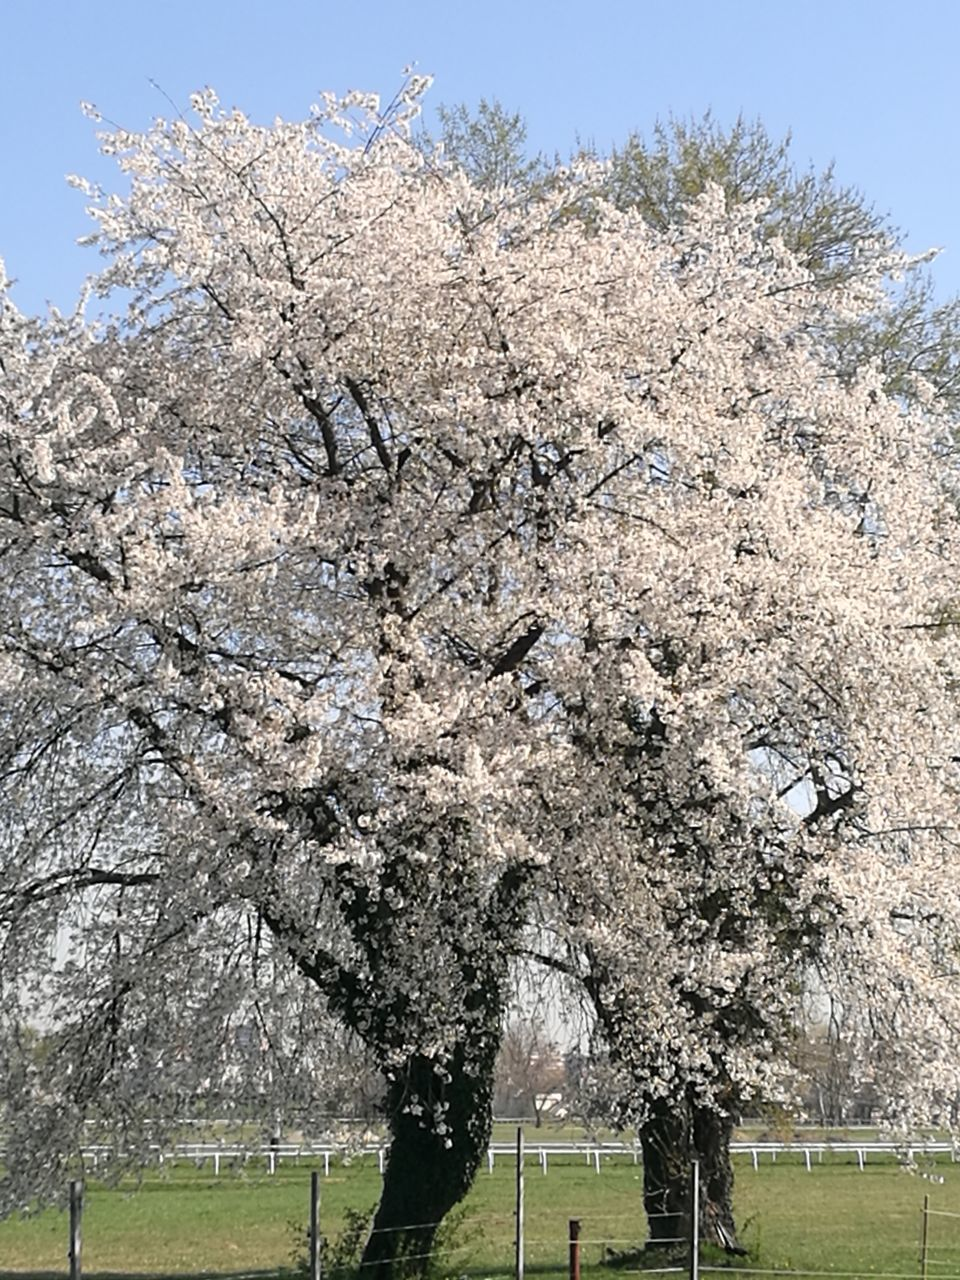 tree, cherry blossom, blossom, flower, branch, springtime, almond tree, cherry tree, nature, beauty in nature, growth, orchard, apple blossom, day, no people, freshness, fragility, outdoors, grass, clear sky, sky